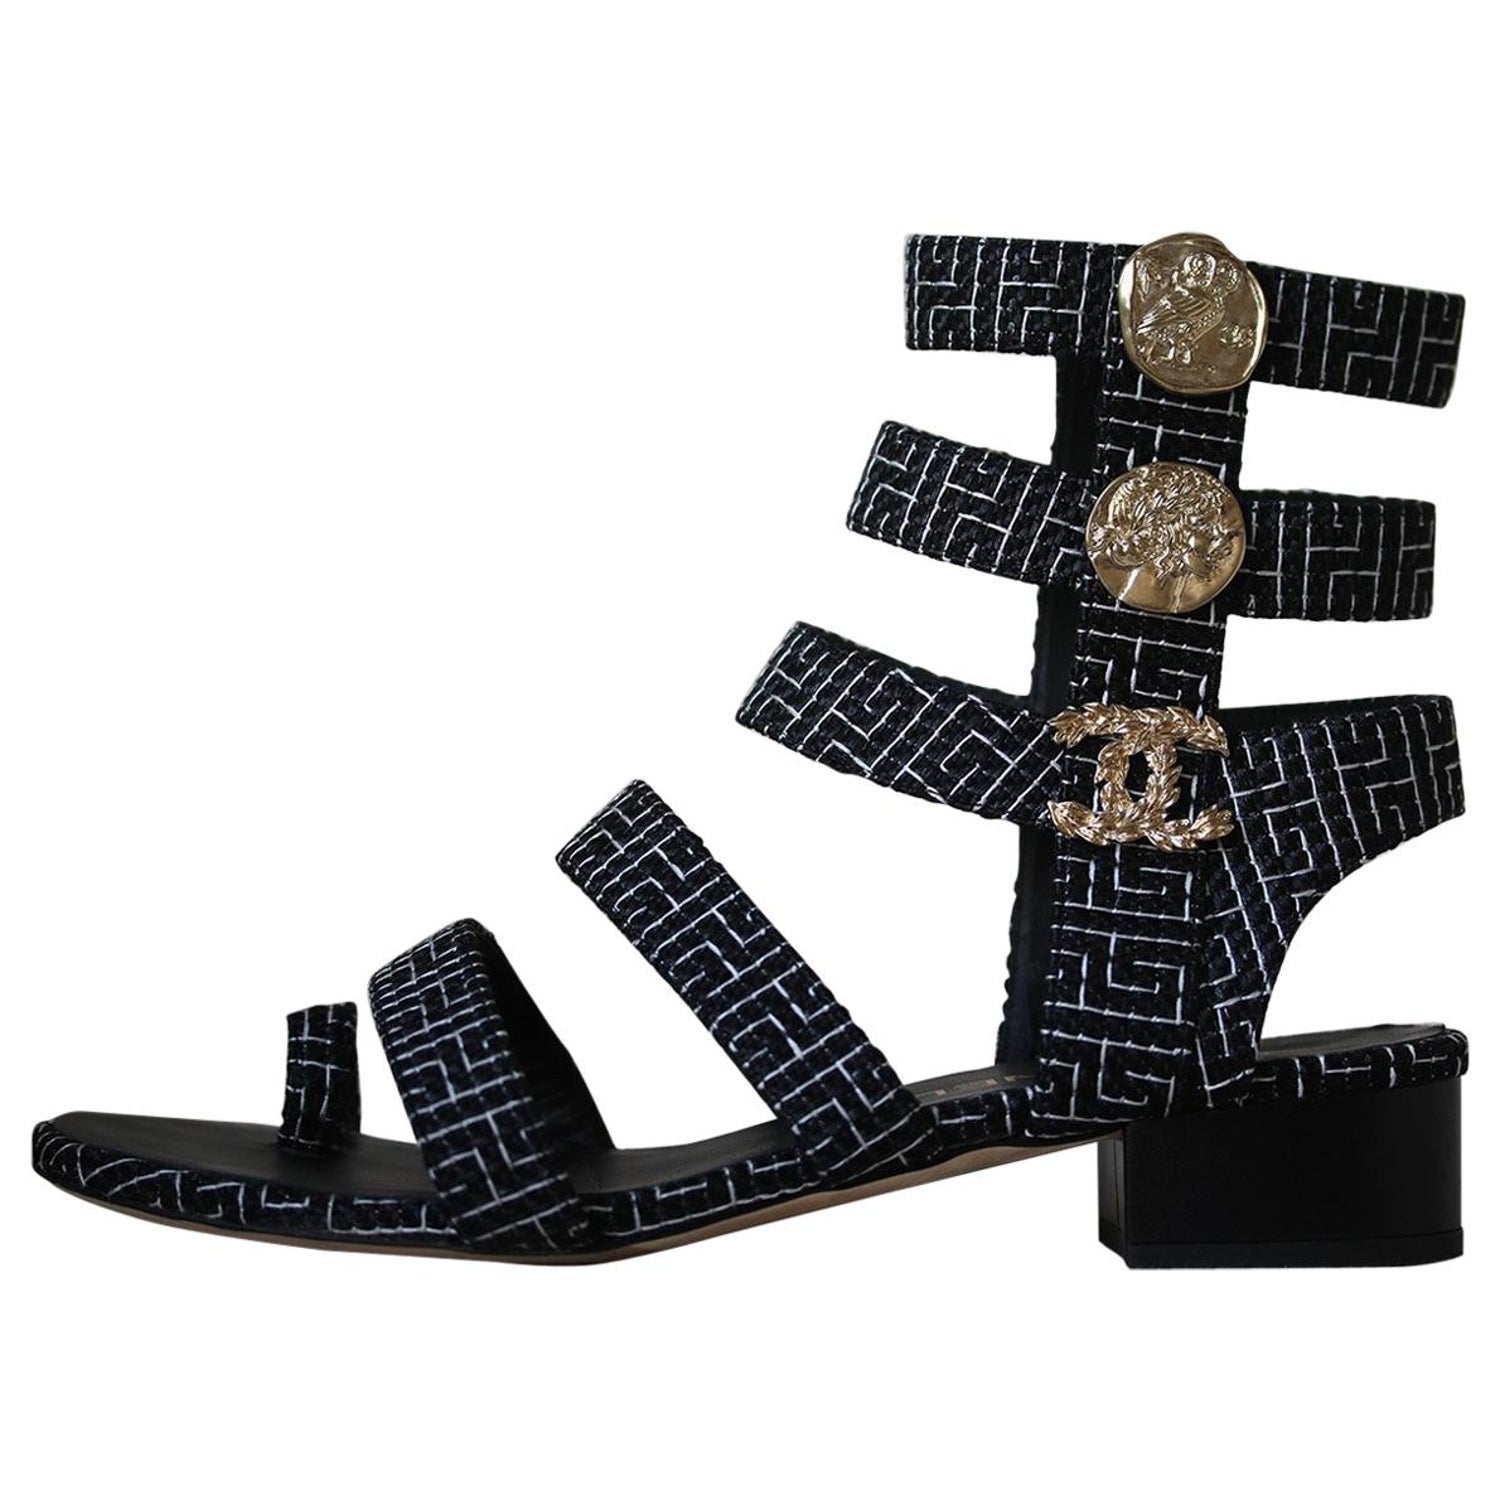 79df243e39a Chanel Coin Embellished Gladiator Sandals at 1stdibs